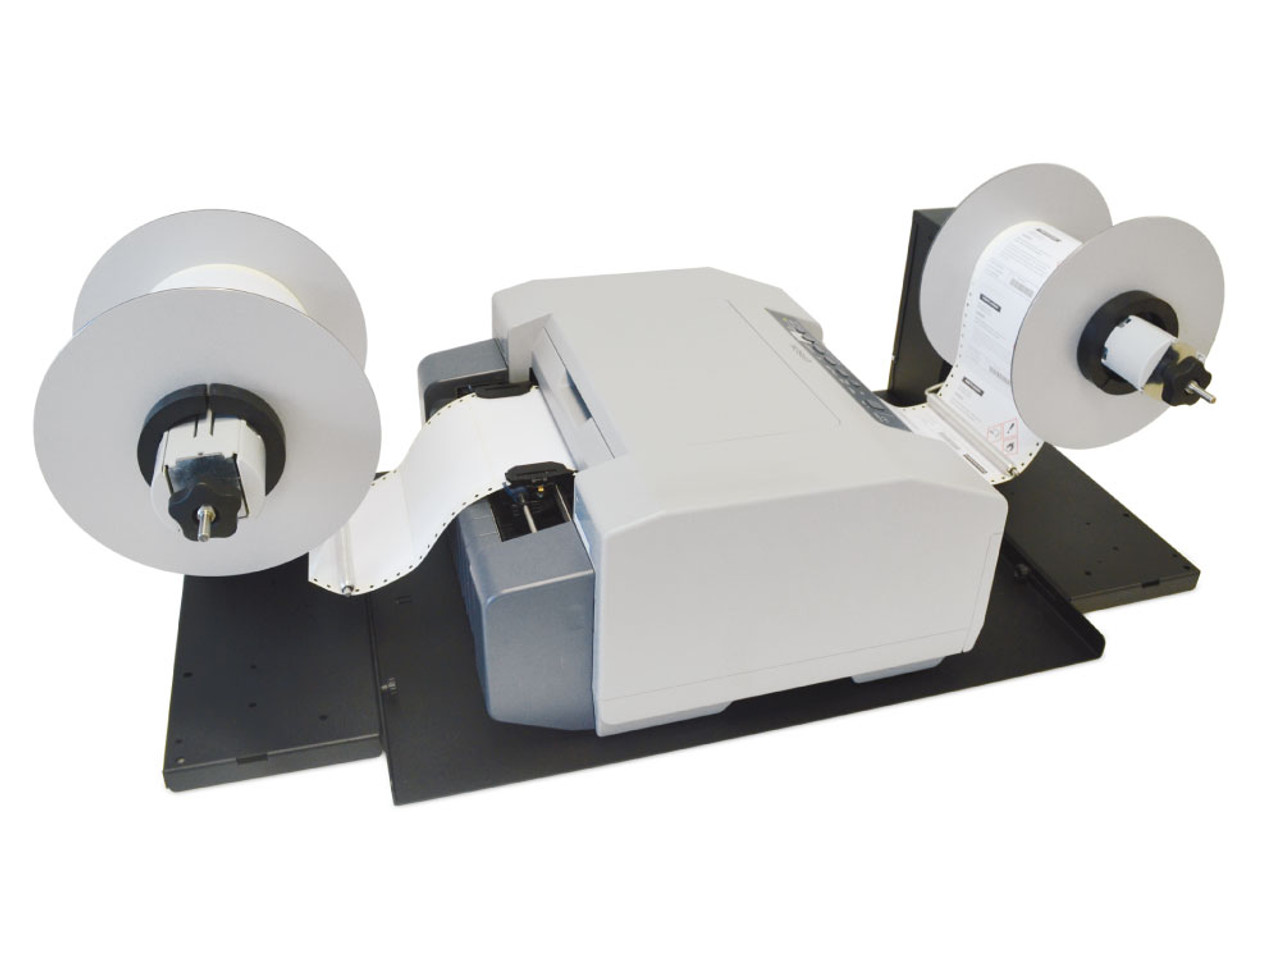 Label Unwinder and Rewinder shown with the Epson GP-C831 label printer. Printing roll to roll